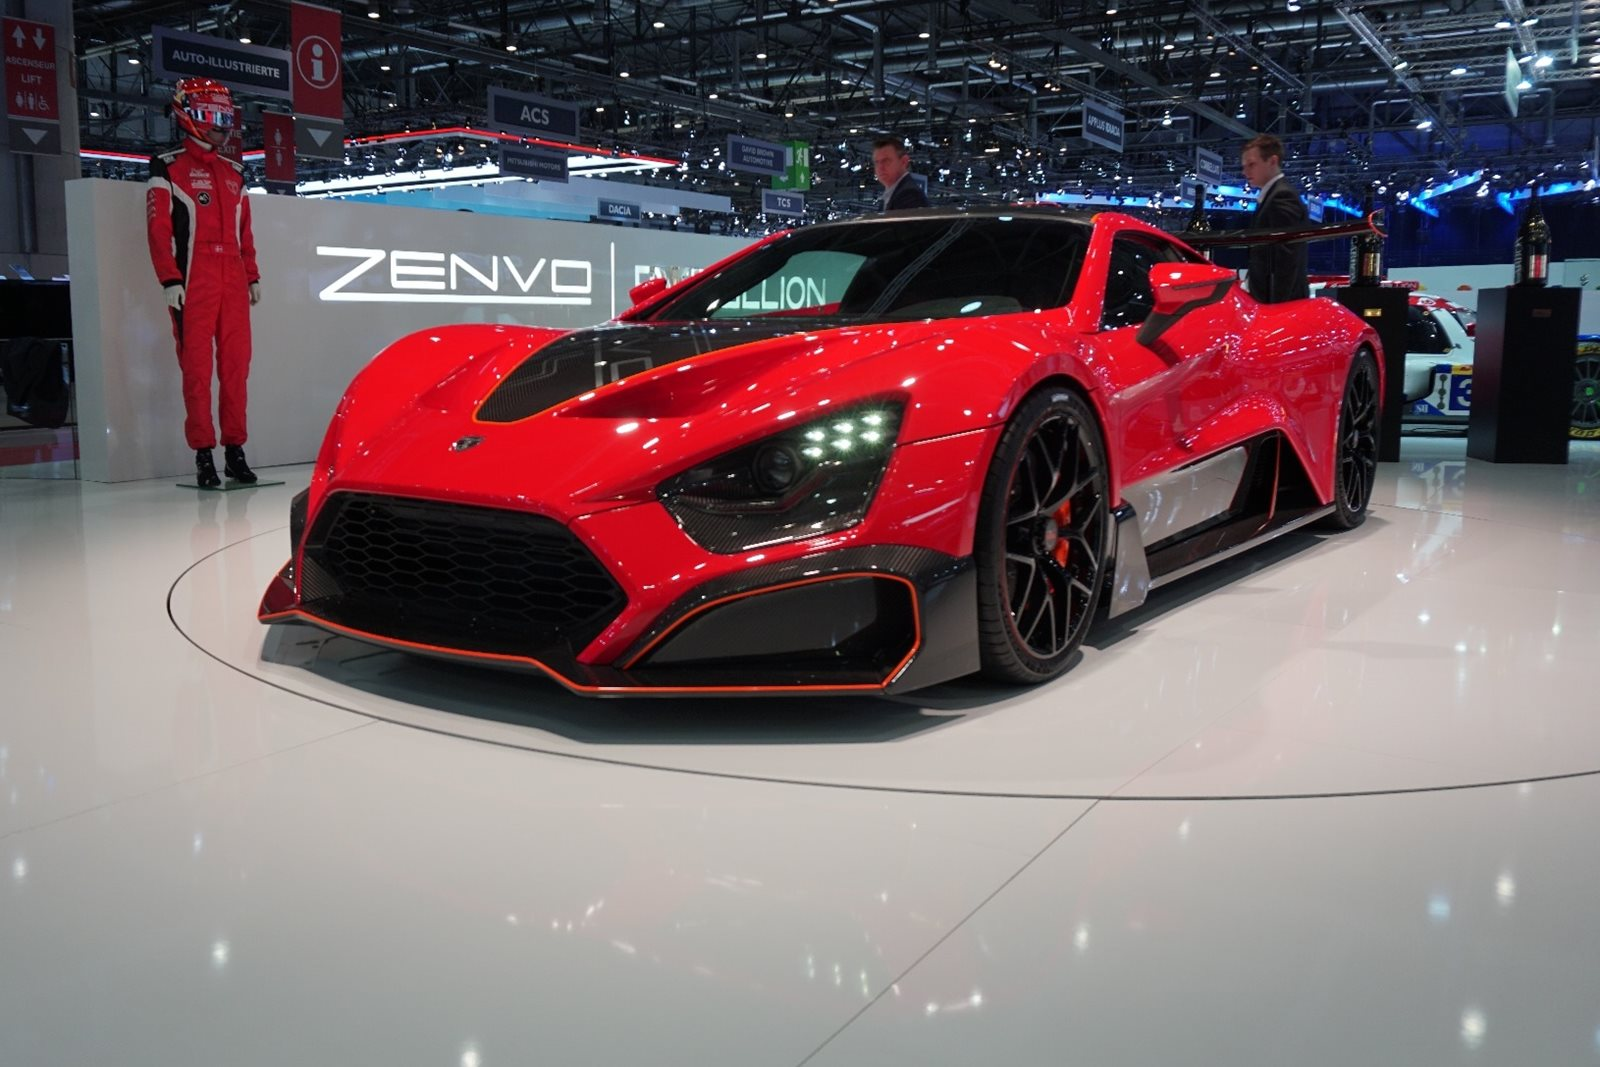 The Zenvo Tsr S Is A Road Legal Race Car With 1 177 Horsepower Carbuzz